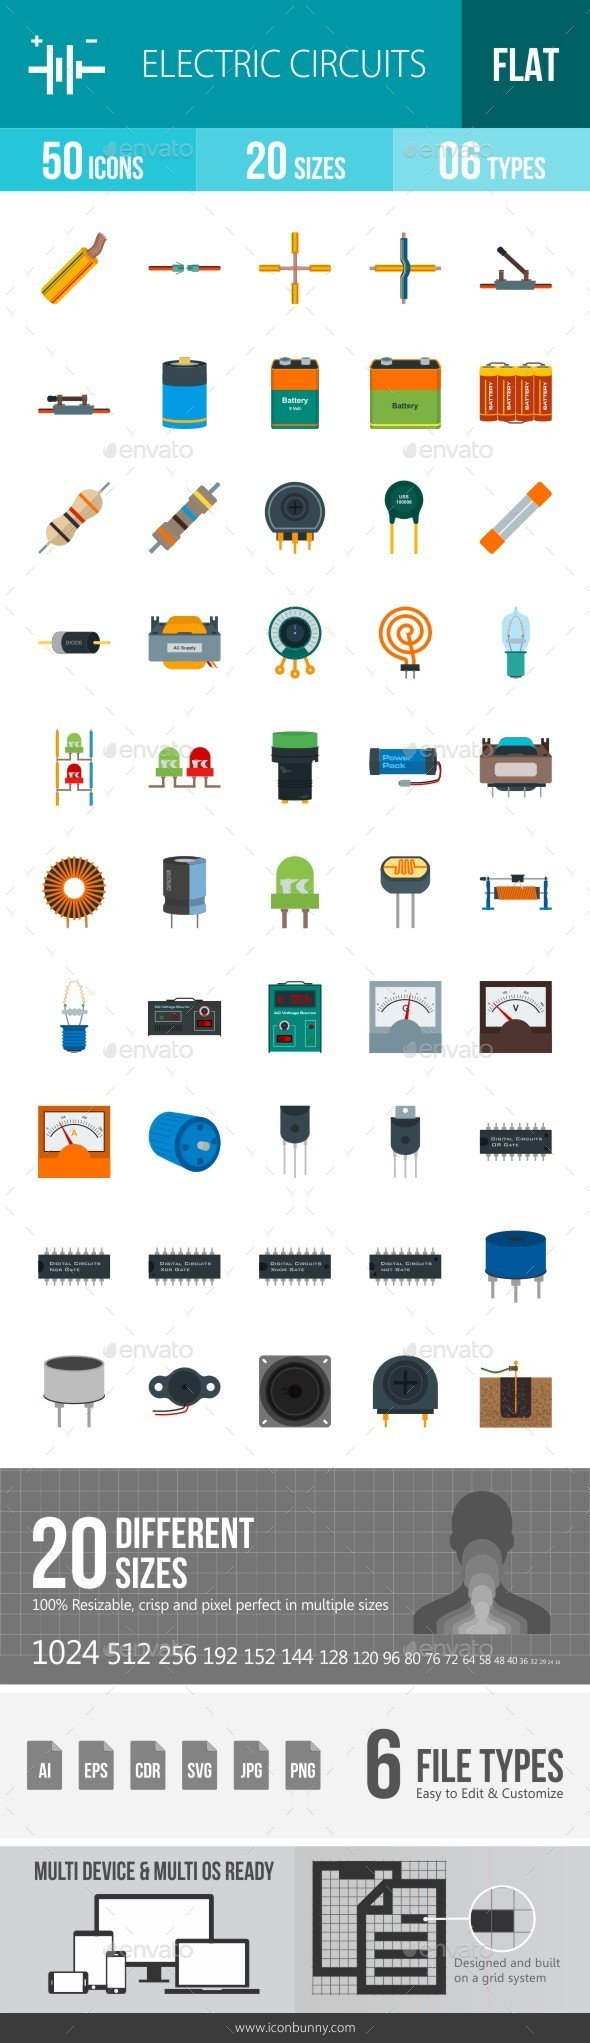 Electric Circuits Flat Multicolor Icons Circuit Website